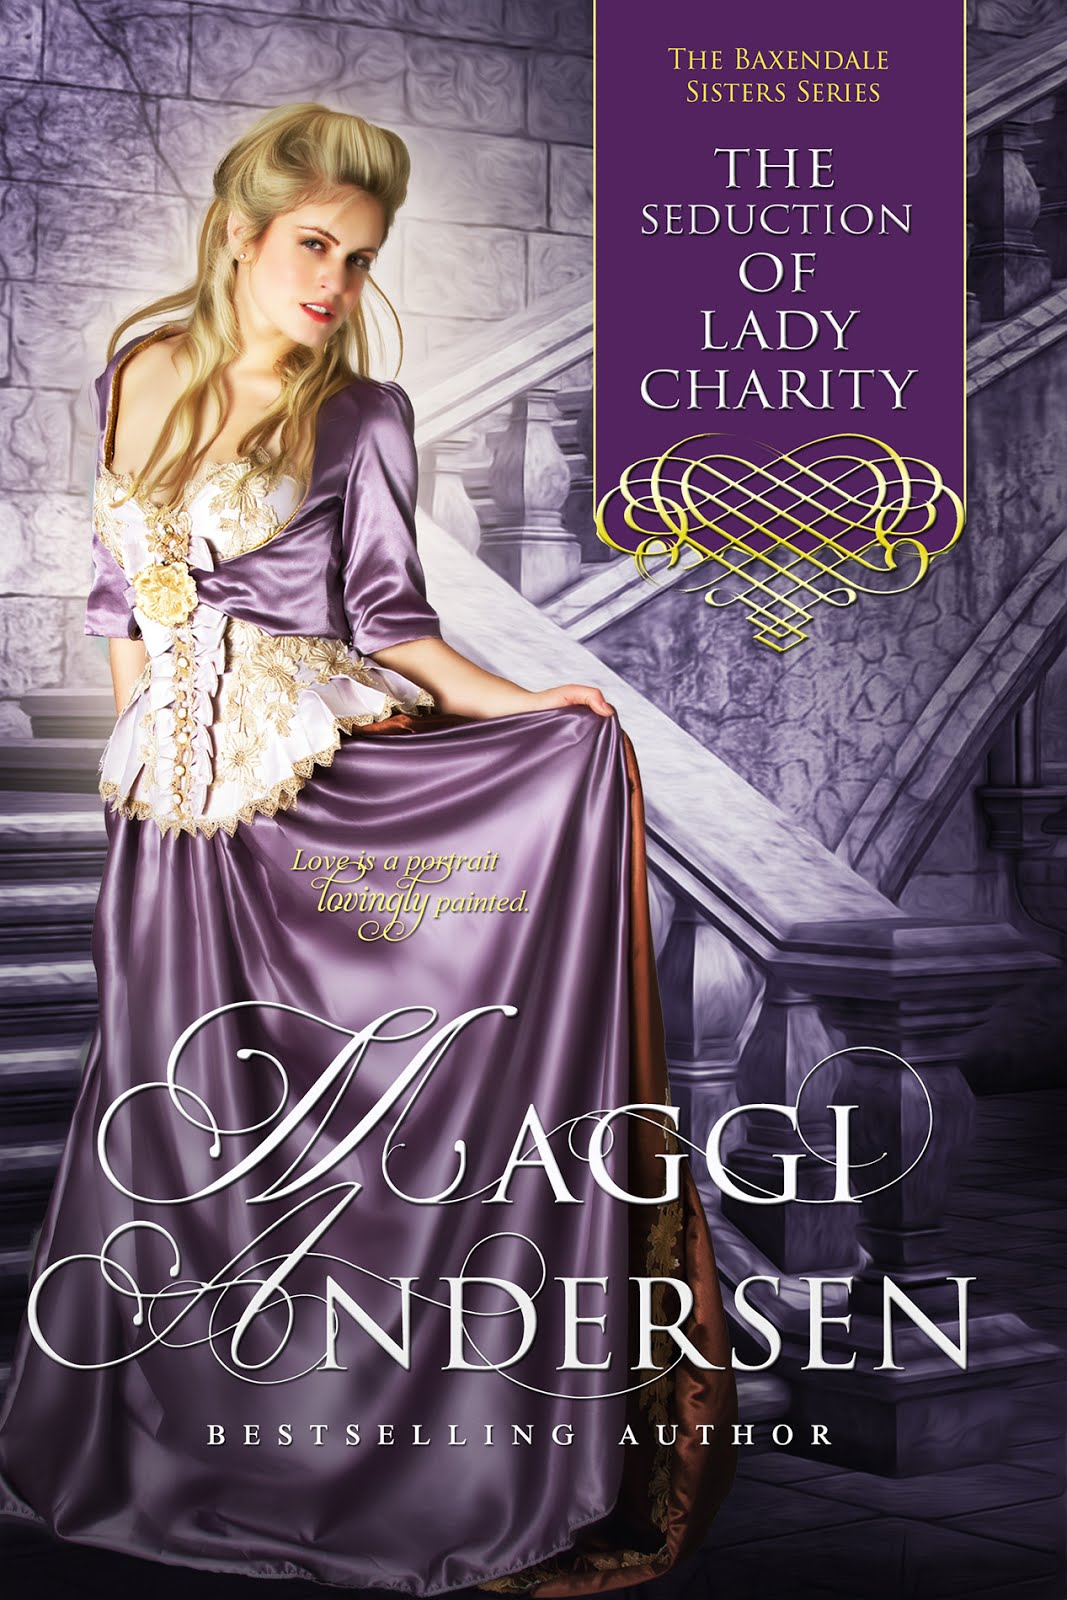 The Seduction of Lady Charity - The Baxendale Sisters